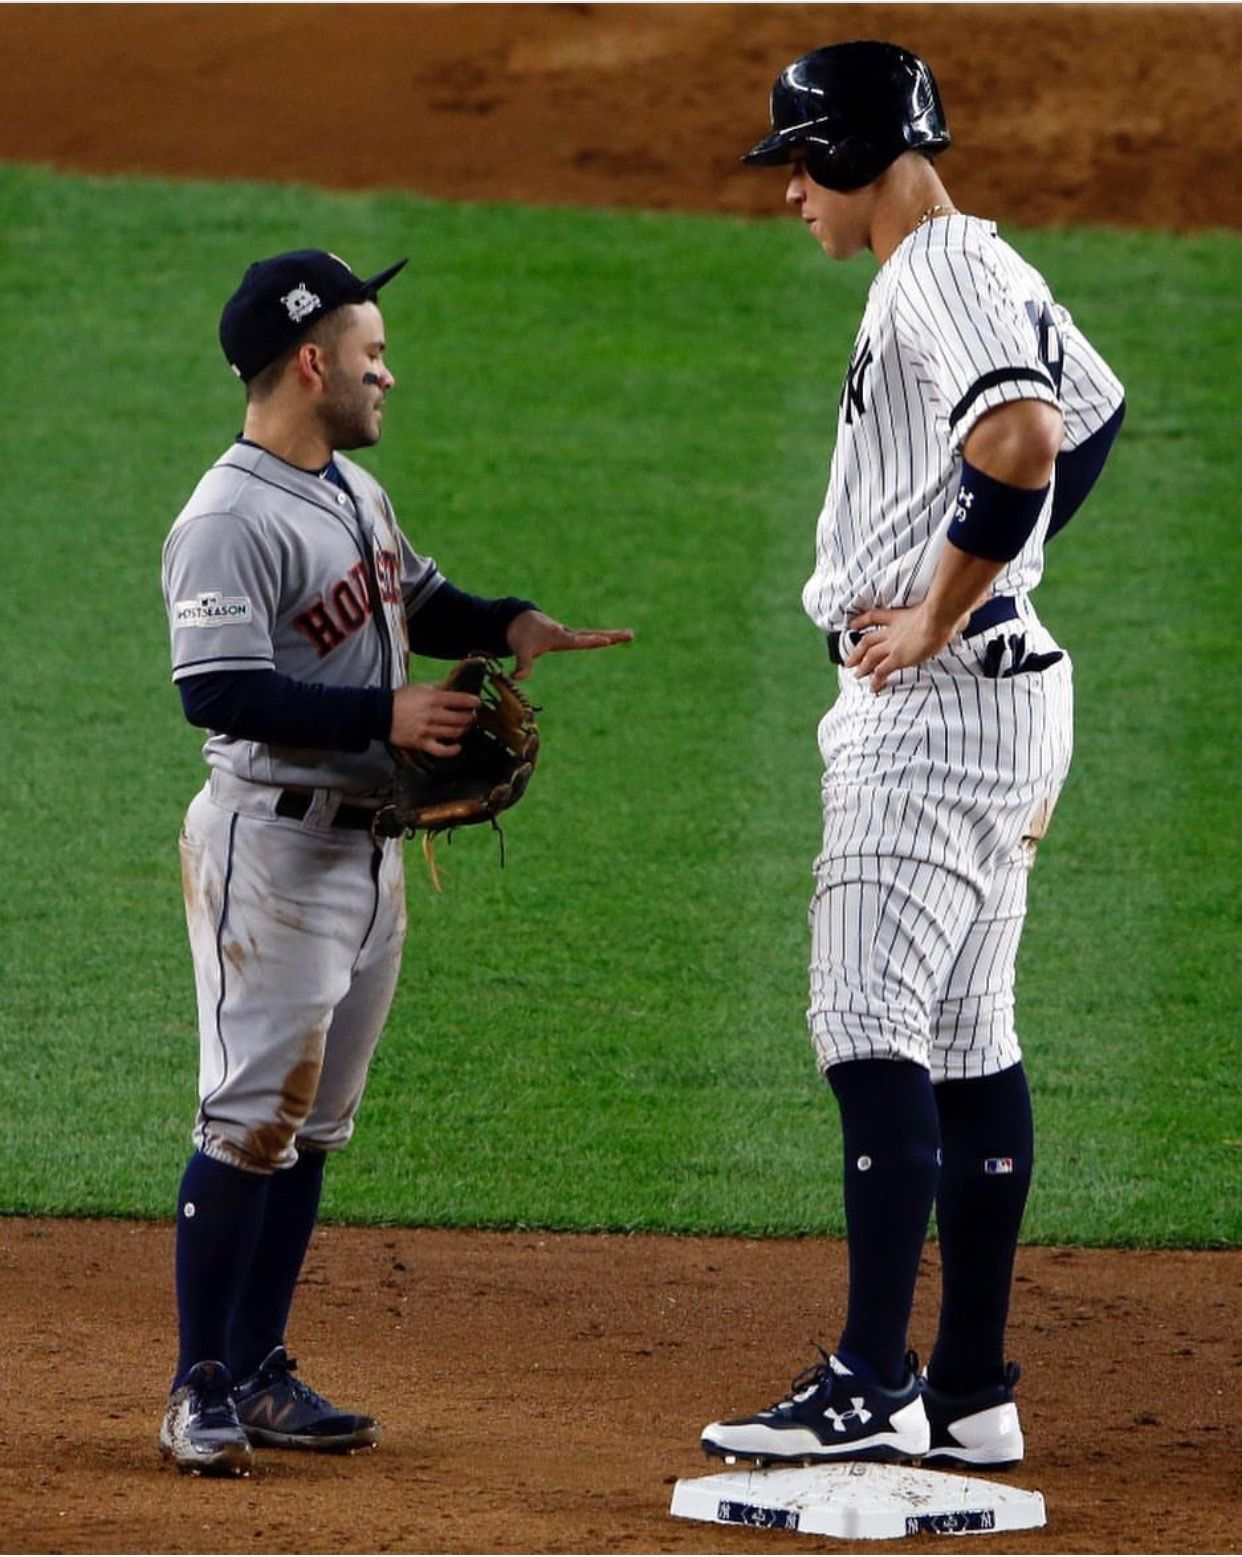 Judge And Altuve The Largest And The Smallest Strike Zones In Mlb Astros Baseball Yankees Baseball Baseball Stadium